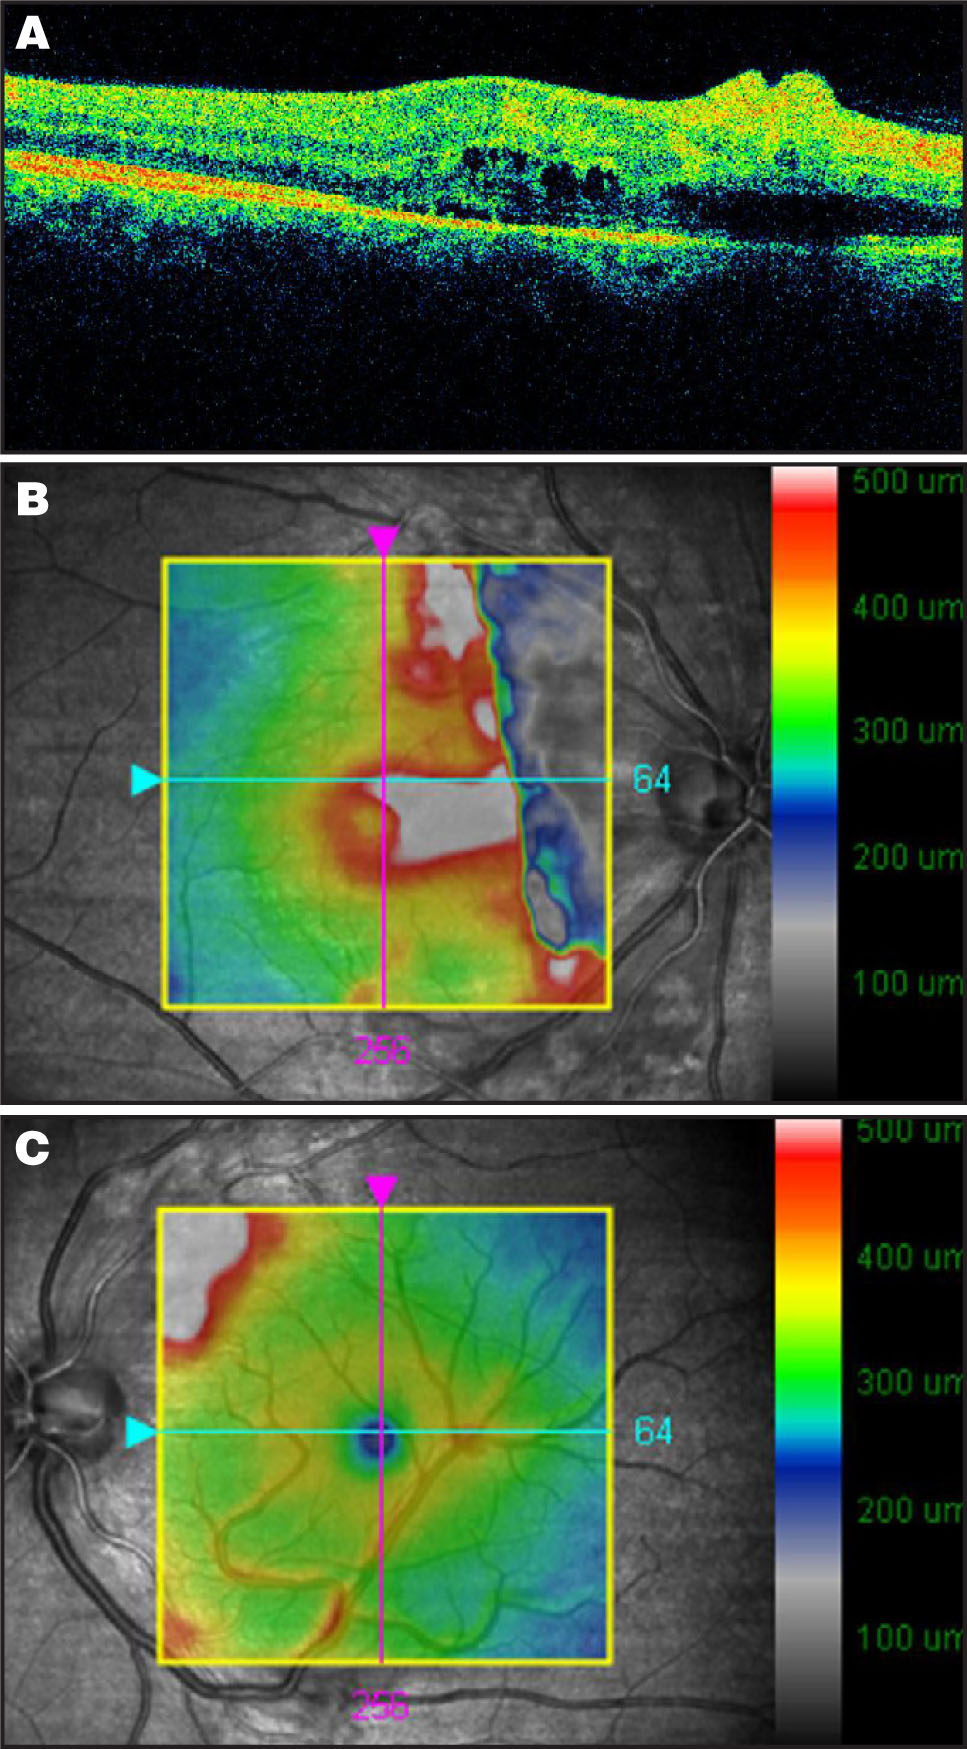 (A) Cirrus HD-OCT of the Right Eye Demonstrated Focal Swelling of the Retinal Nerve Fiber Layer RNFL, which Corresponded to the Cotton-Wool Spots Seen Clinically. Subretinal Fluid was Present Centrally. Central Subfield Thickness = 461 μm, Volume = 11.3 mm3, Average Thickness= 313 μm). (B) Cirrus HD-OCT Overlay of the Right Eye is Showing Significant Retinal Thickening Corresponding to Cotton-Wool Spots Seen Clinically with Extension Centrally to Involve the Fovea. The Peripapillary Macular Region has Marked Edema, which did not Fit on the Standard Micrometer Scale. (C) Cirrus HD-OCT Overlay of the Left Eye is Showing Macular Thickening Supranasally Corresponding to the Cotton-Wool Spots Seen Clinically. The Edema does not Extend into the Foveal Region.